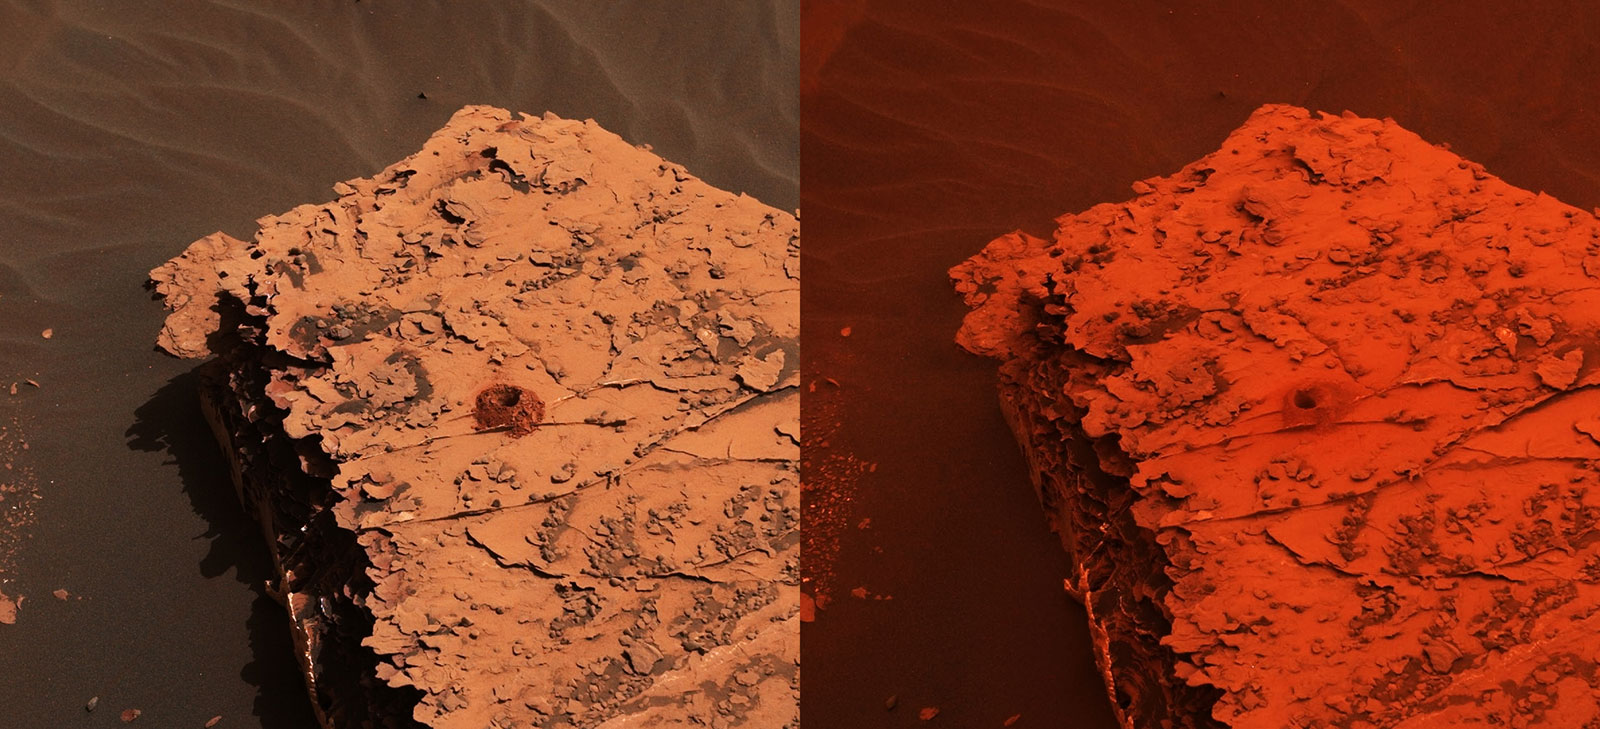 Two images from the Mast Camera (Mastcam) on NASA's Curiosity rover depicting the change in the color of light illuminating the Martian surface since a dust storm engulfed Gale Crater.